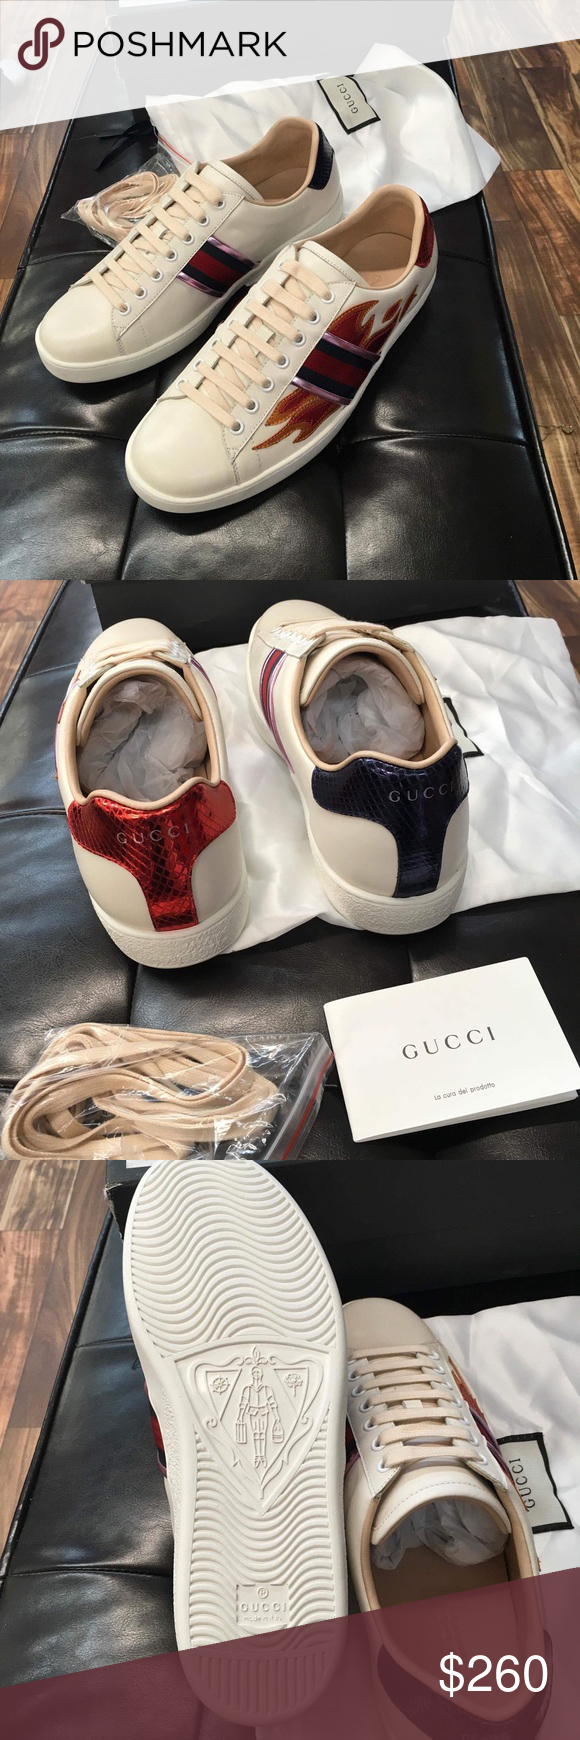 3befafdbc19 Gucci sneaker Gucci ace. Size 11. New with box 1 dust bag fast 2-3 days  usps priority shipping Gucci Shoes Sneakers